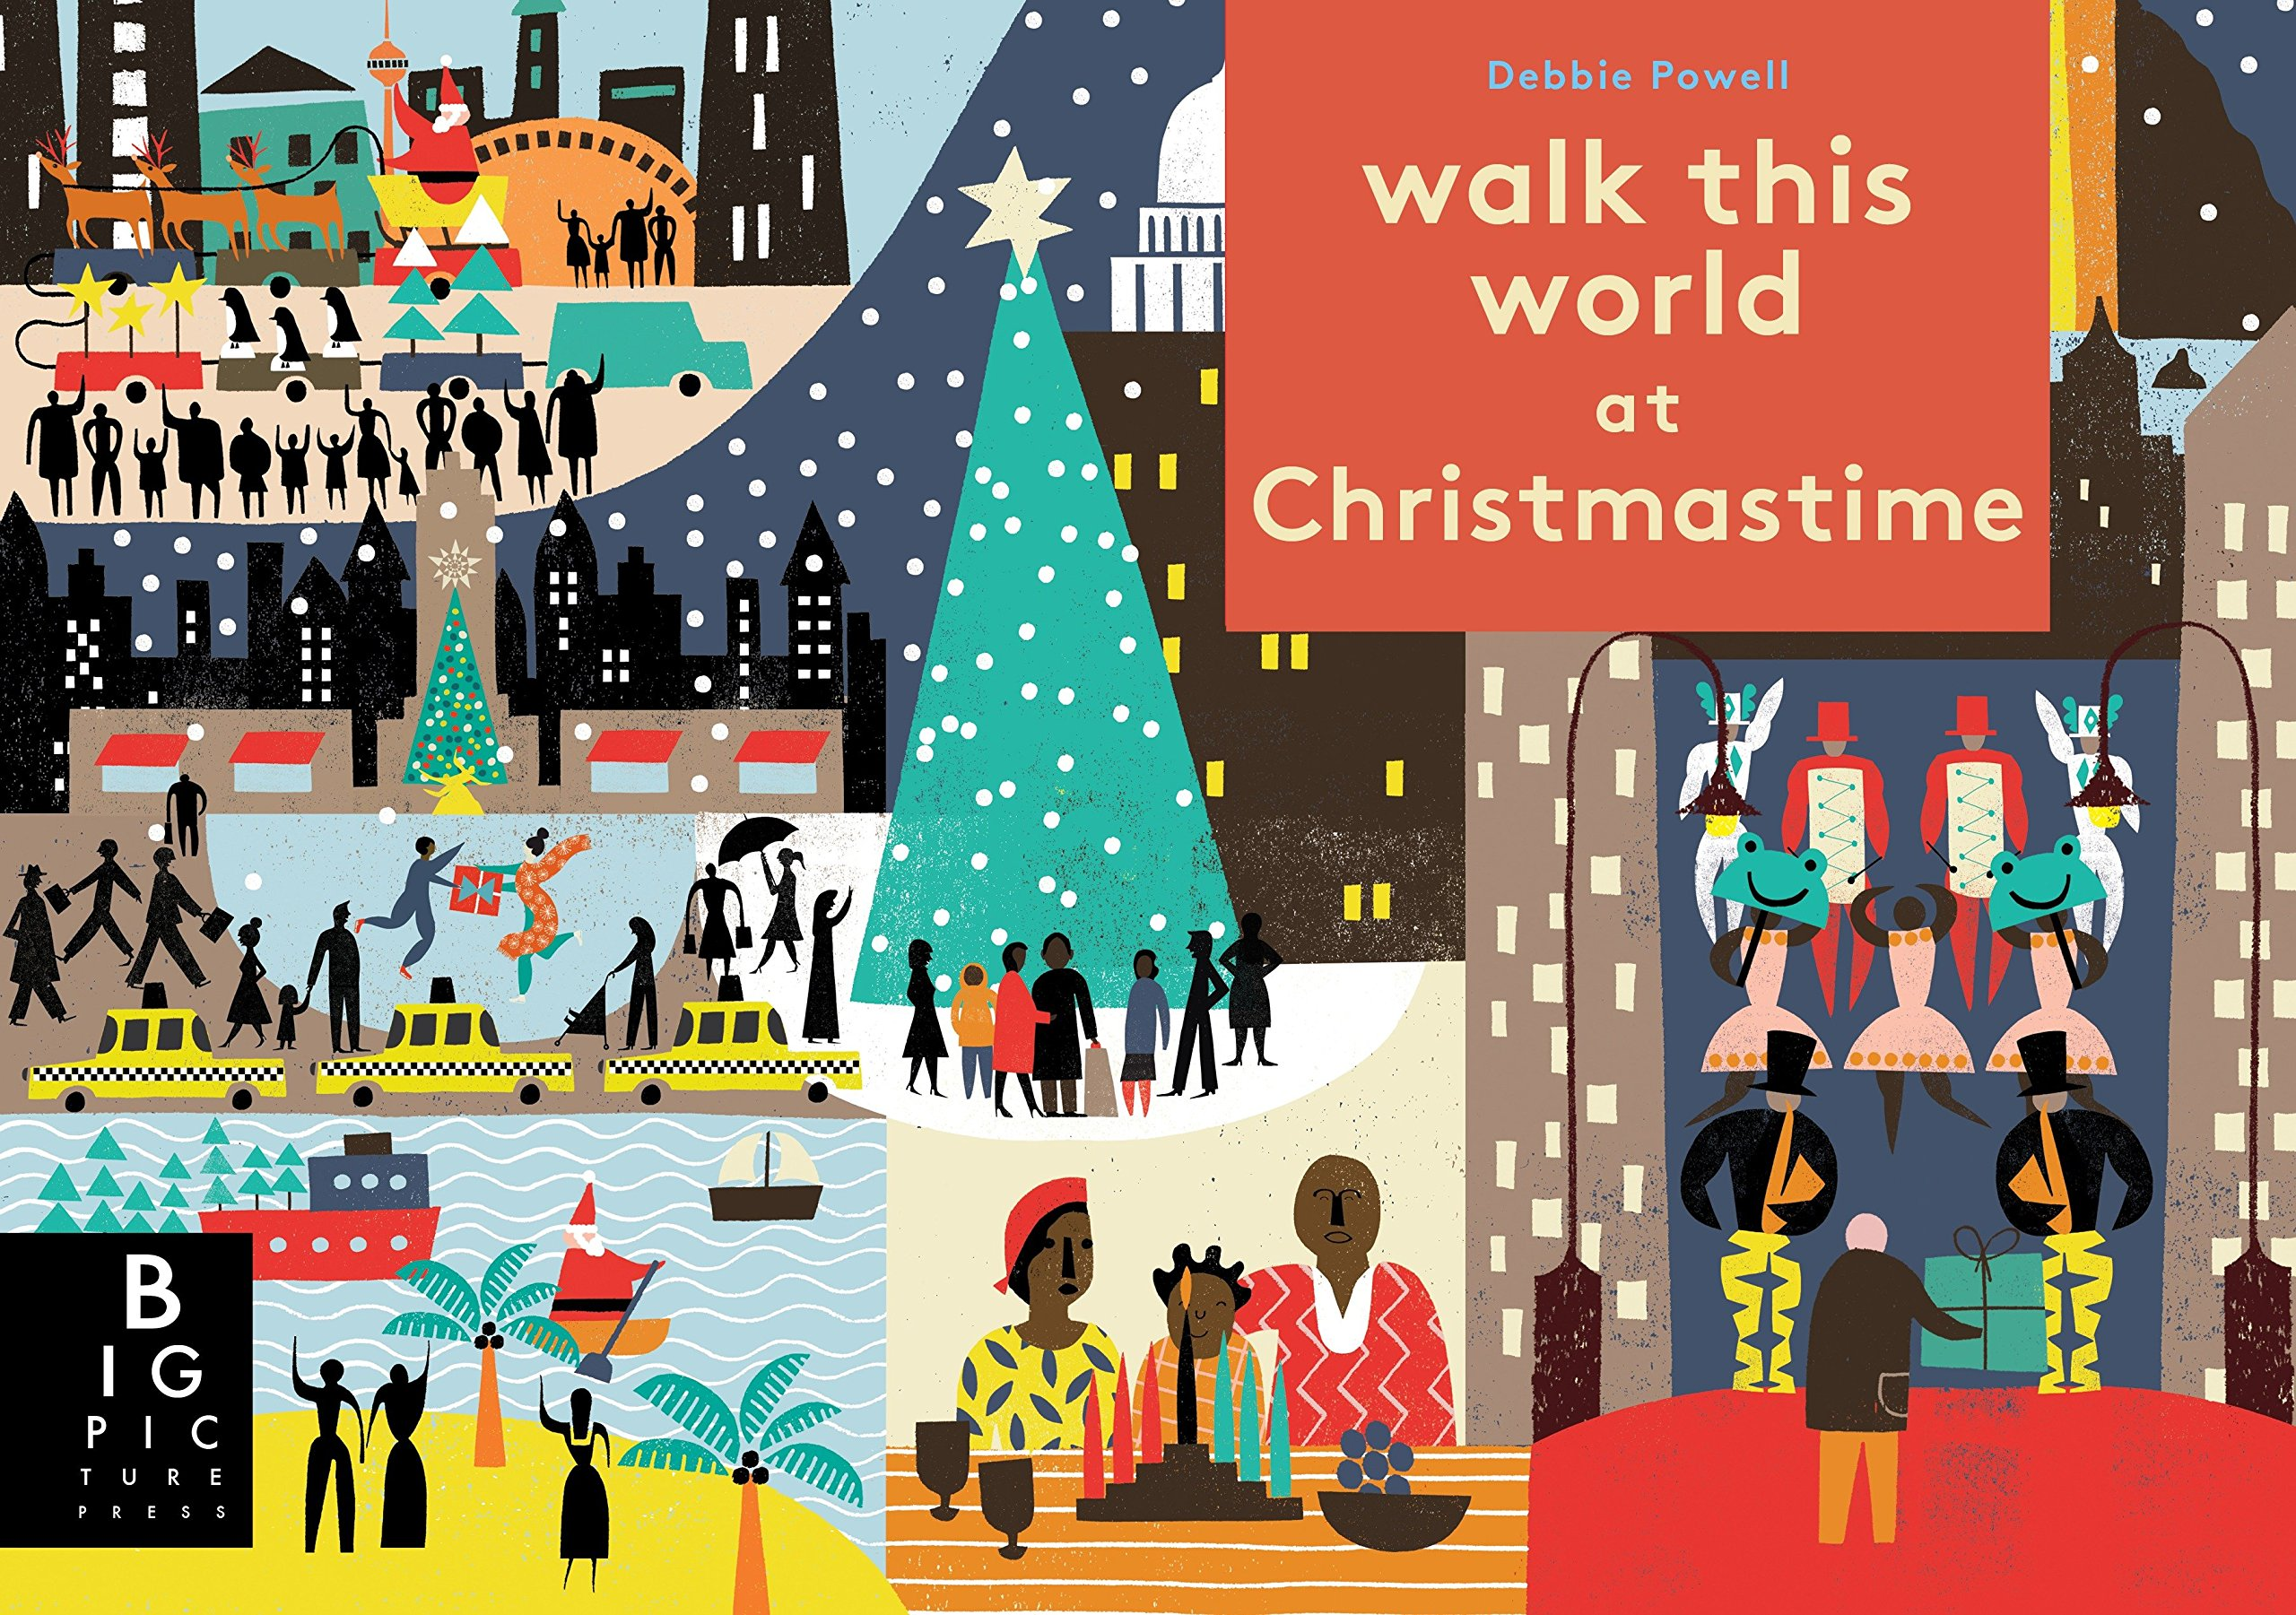 Walk this World at Christmastime book cover.